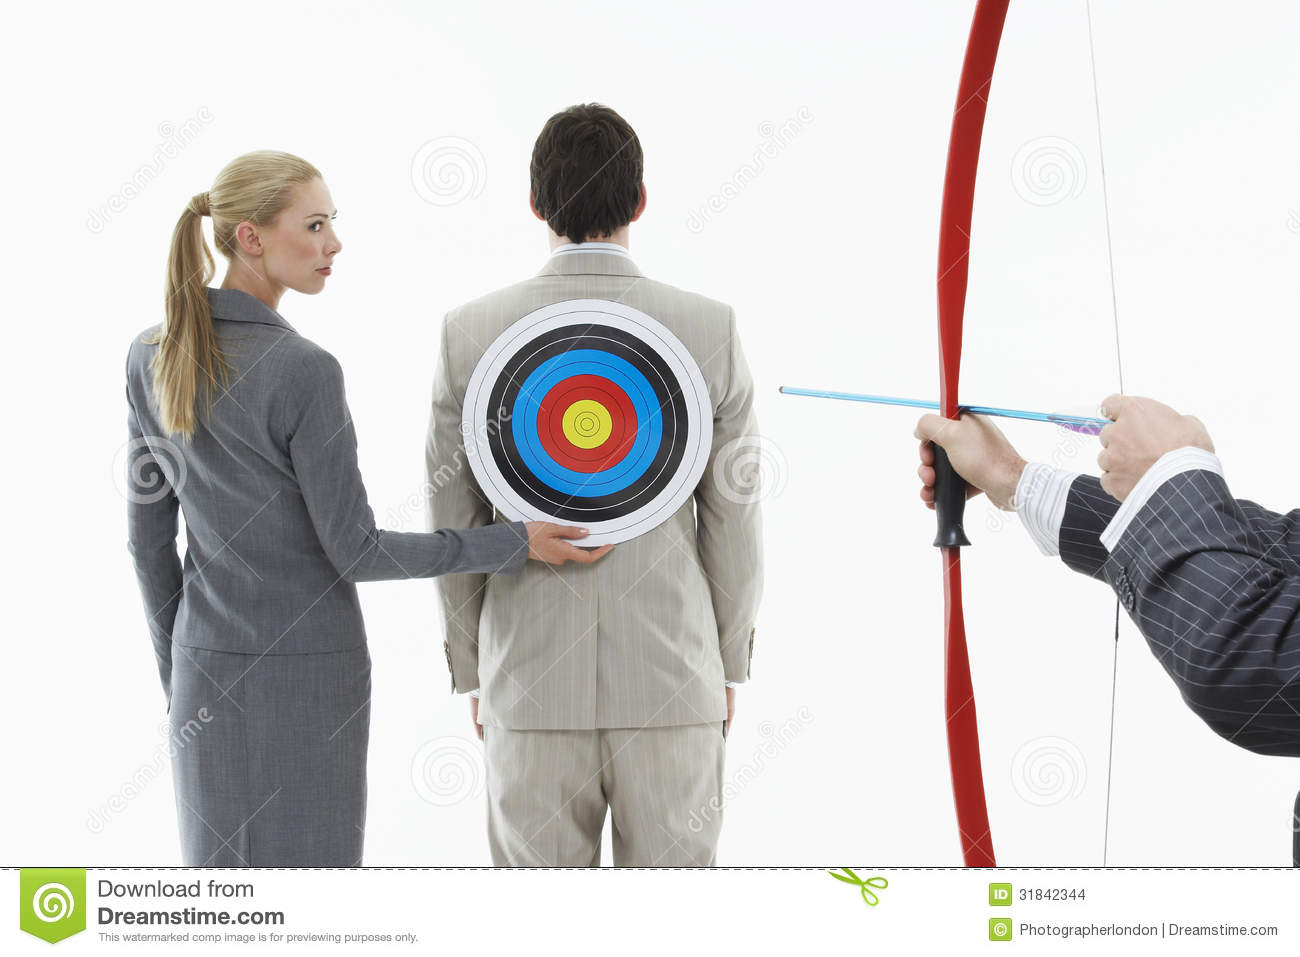 THE BRIDGE-WAY - Page 8 Aiming-arrow-target-businessman-s-back-business-women-holding-to-man-other-men-aims-bow-31842344